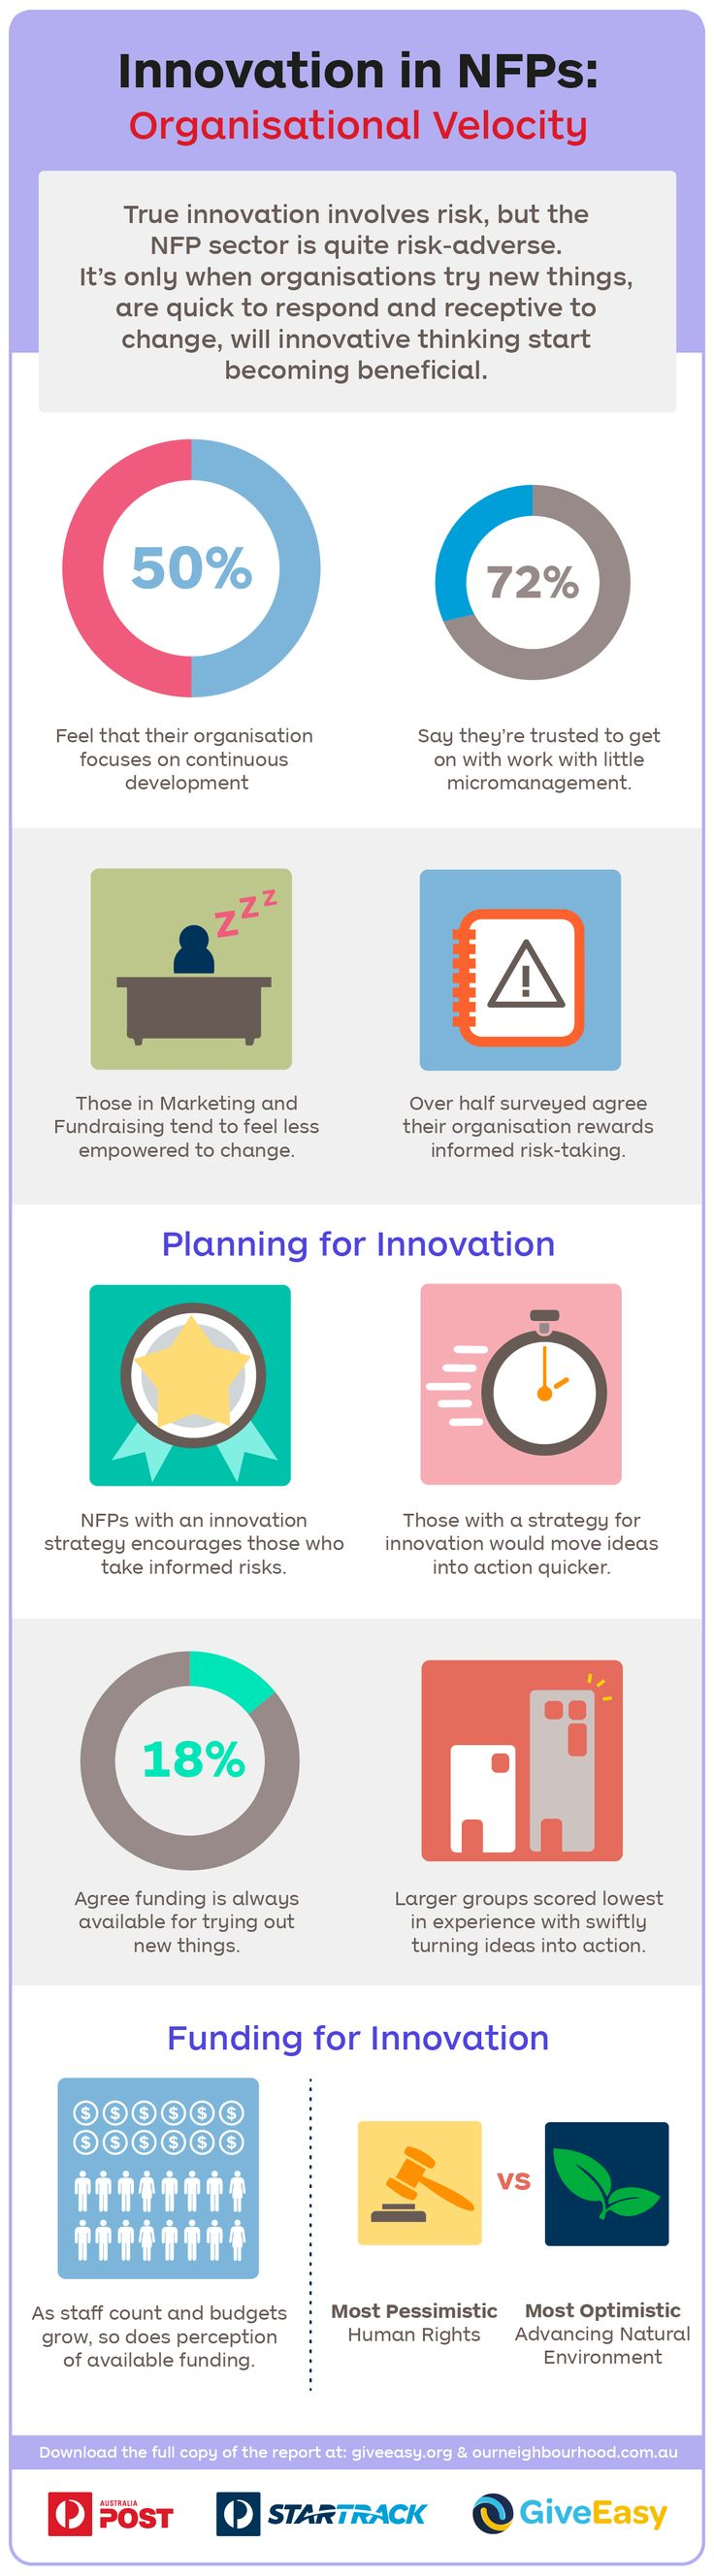 Innovation funding is scarce in NFPs, with 18% of employees agreeing that funds are readily available for testing new initiatives. Read more: http://auspo.st/1xwnuez #NonProfit #Innovation